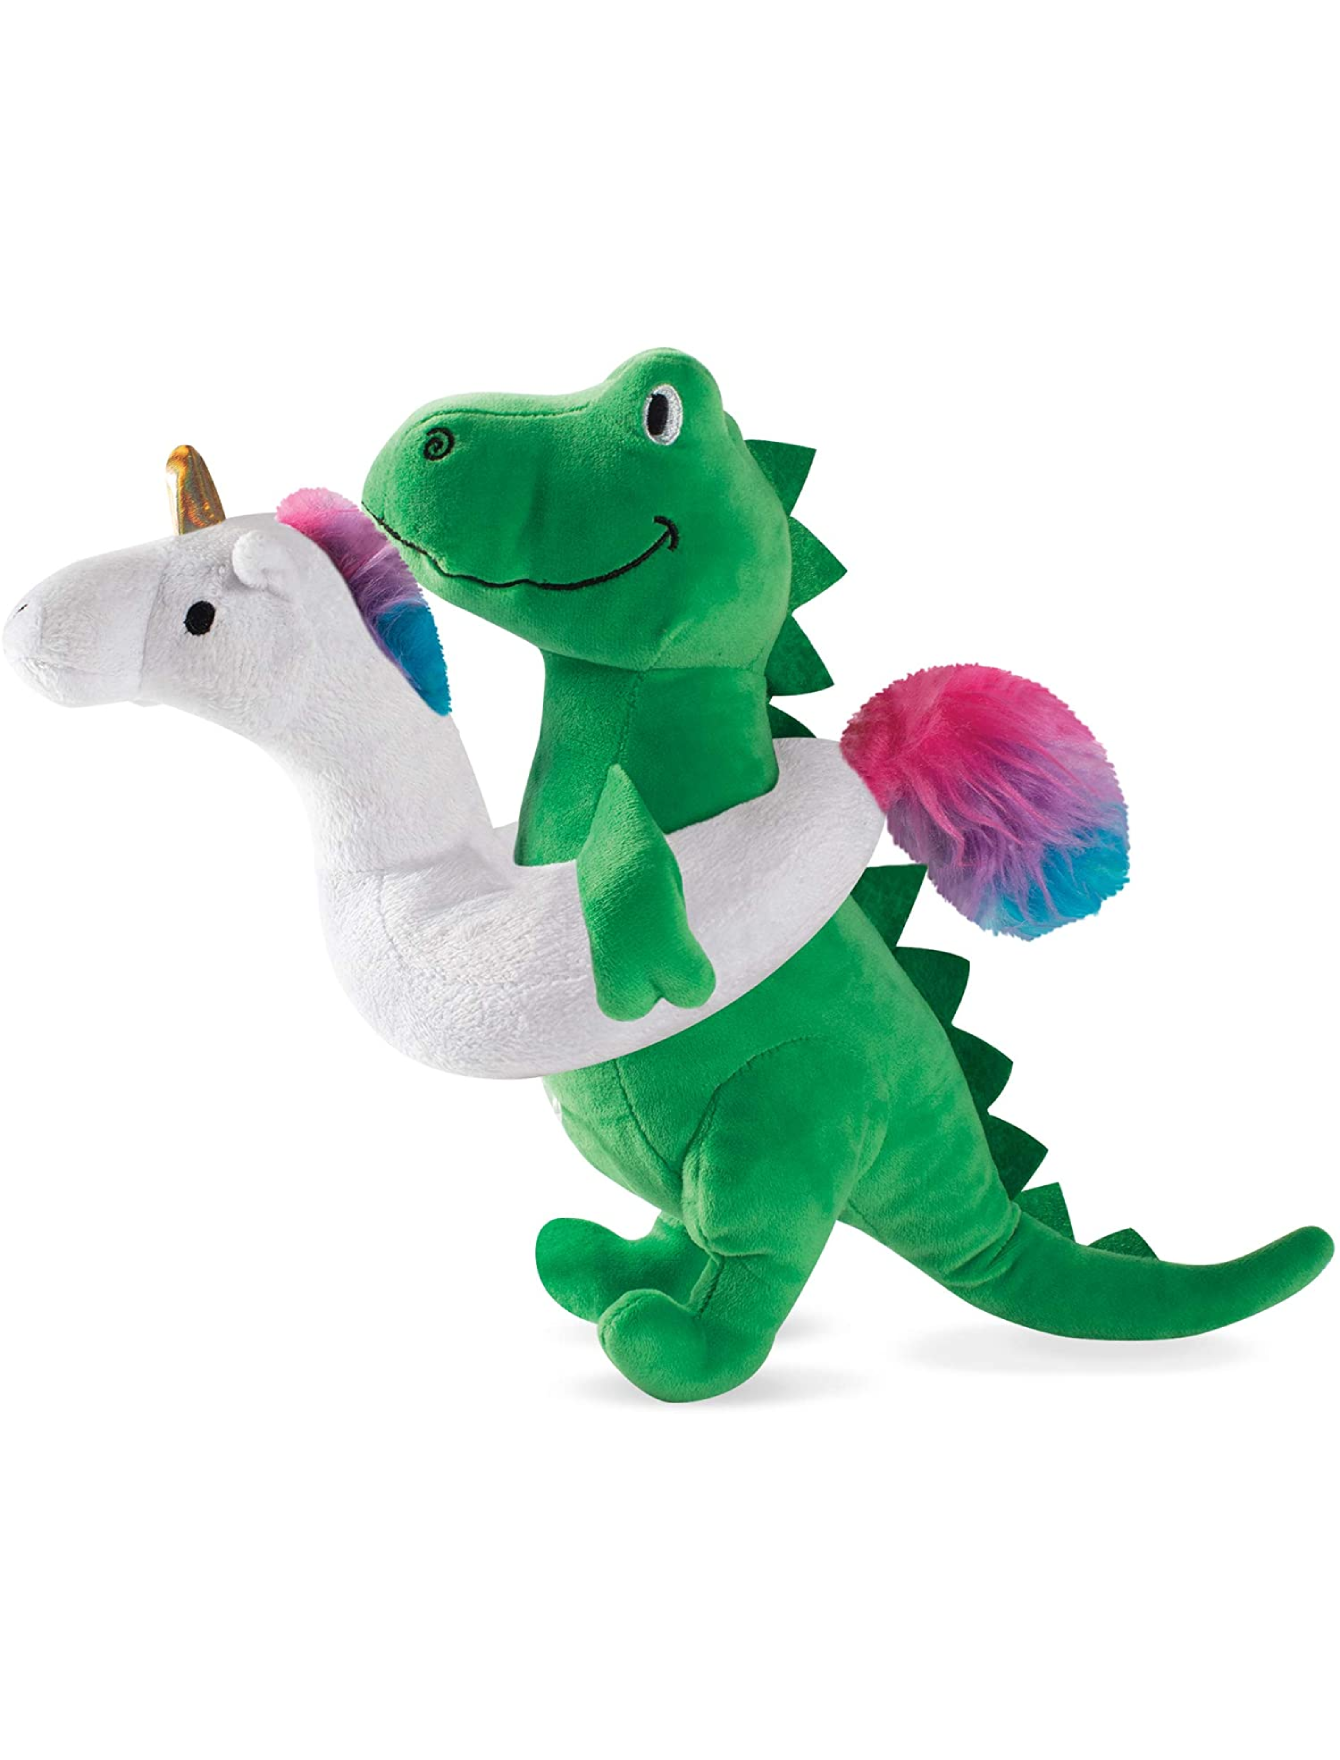 Fringe Studio Summa Time Rex, Dog Squeaky Plush Toy | Perromart Online Pet Store Singapore